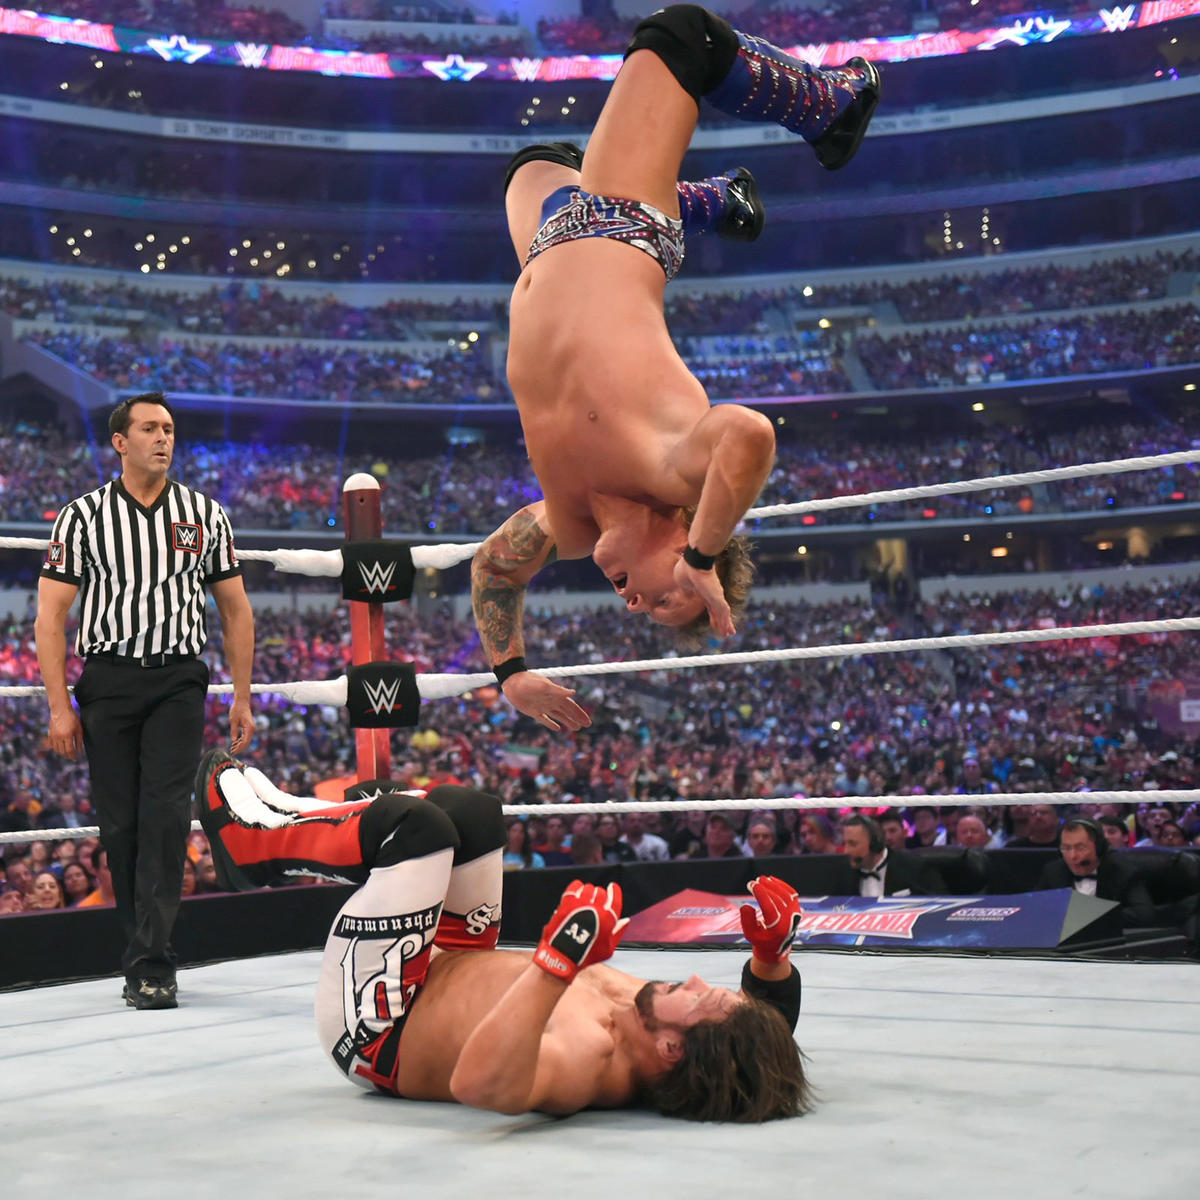 Jericho attempts the Lionsault, but Styles gets his knees up just in time.